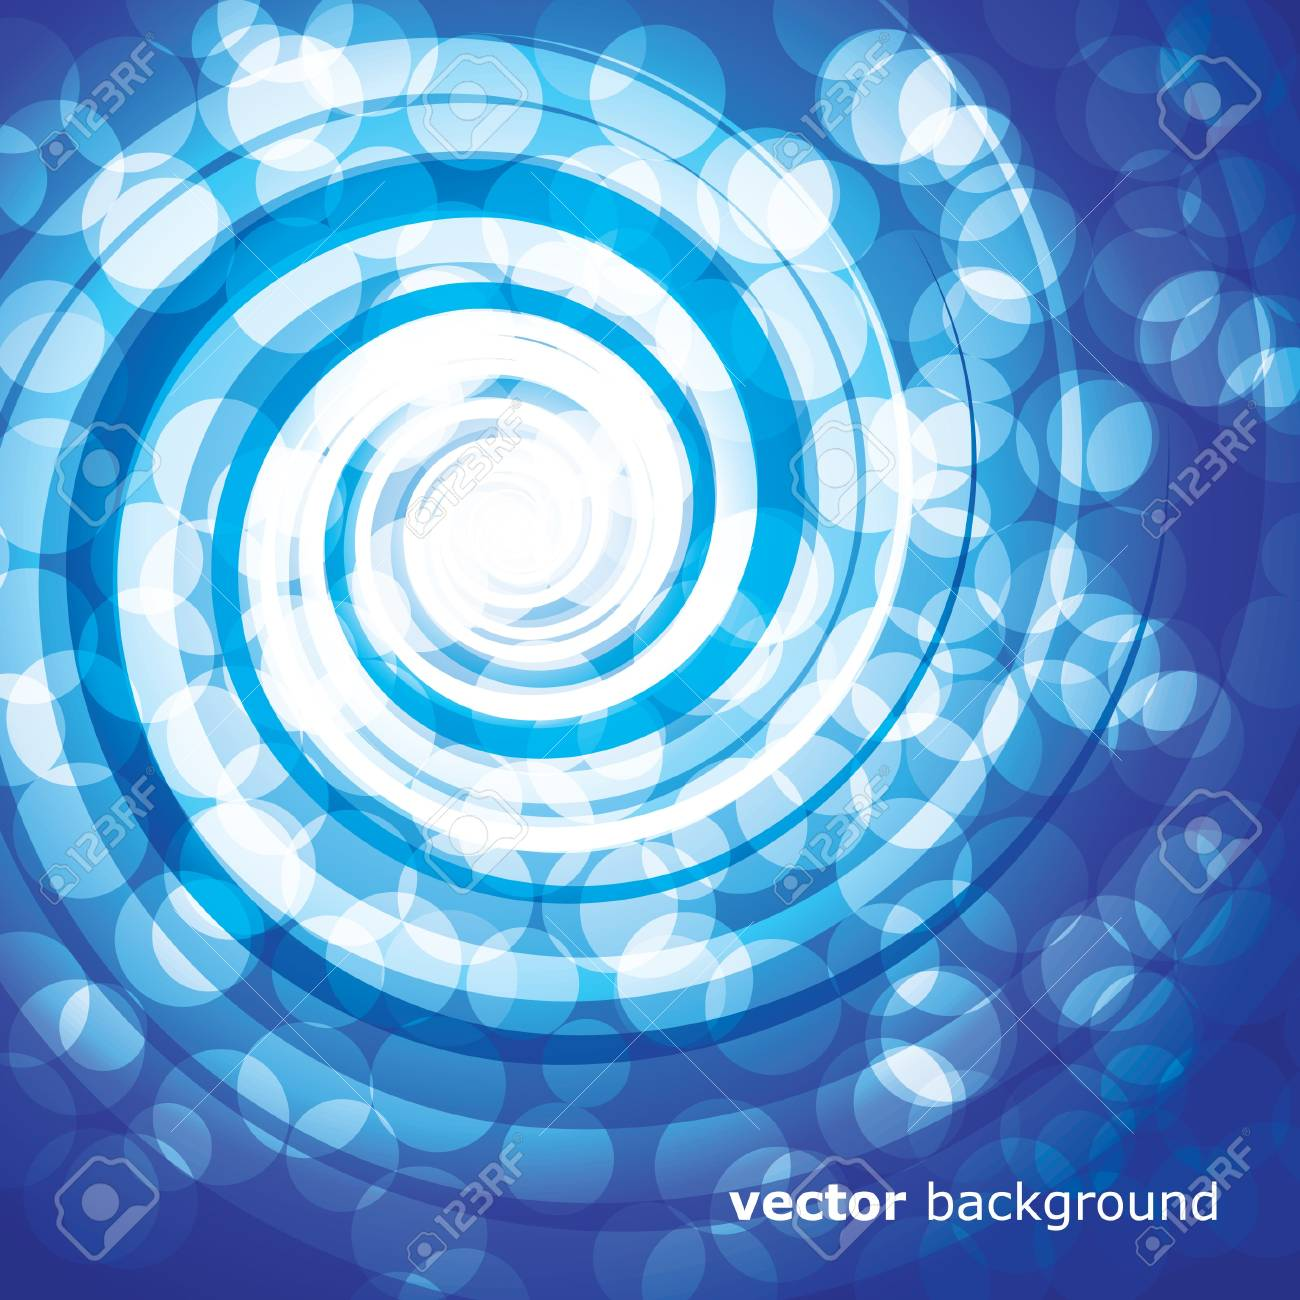 Abstract Background Stock Vector - 13687297